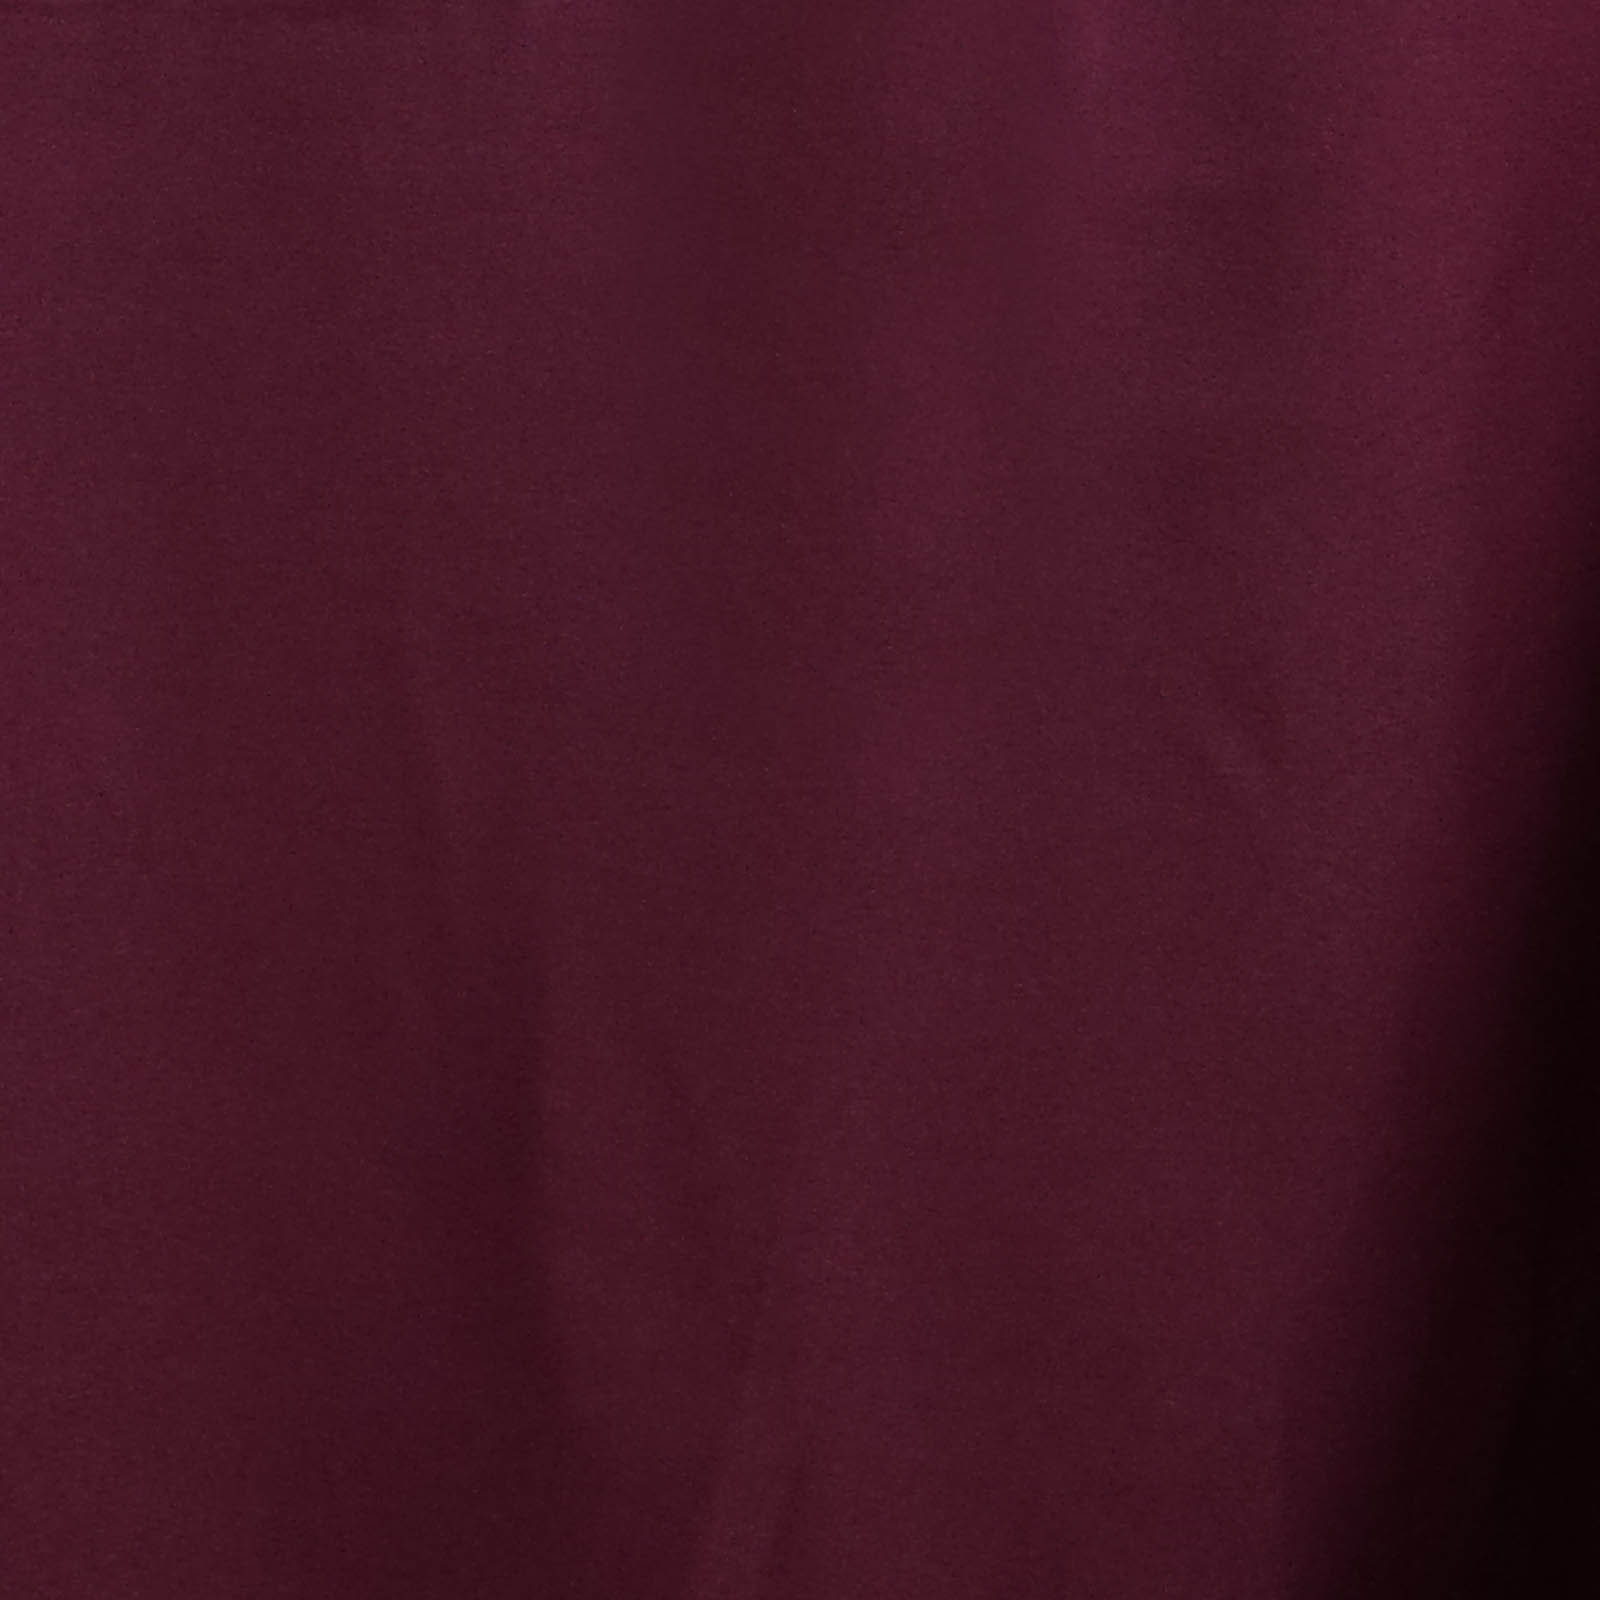 90x132-034-Polyester-Rectangle-Tablecloths-For-Wedding-Party-Banquet-Events thumbnail 8